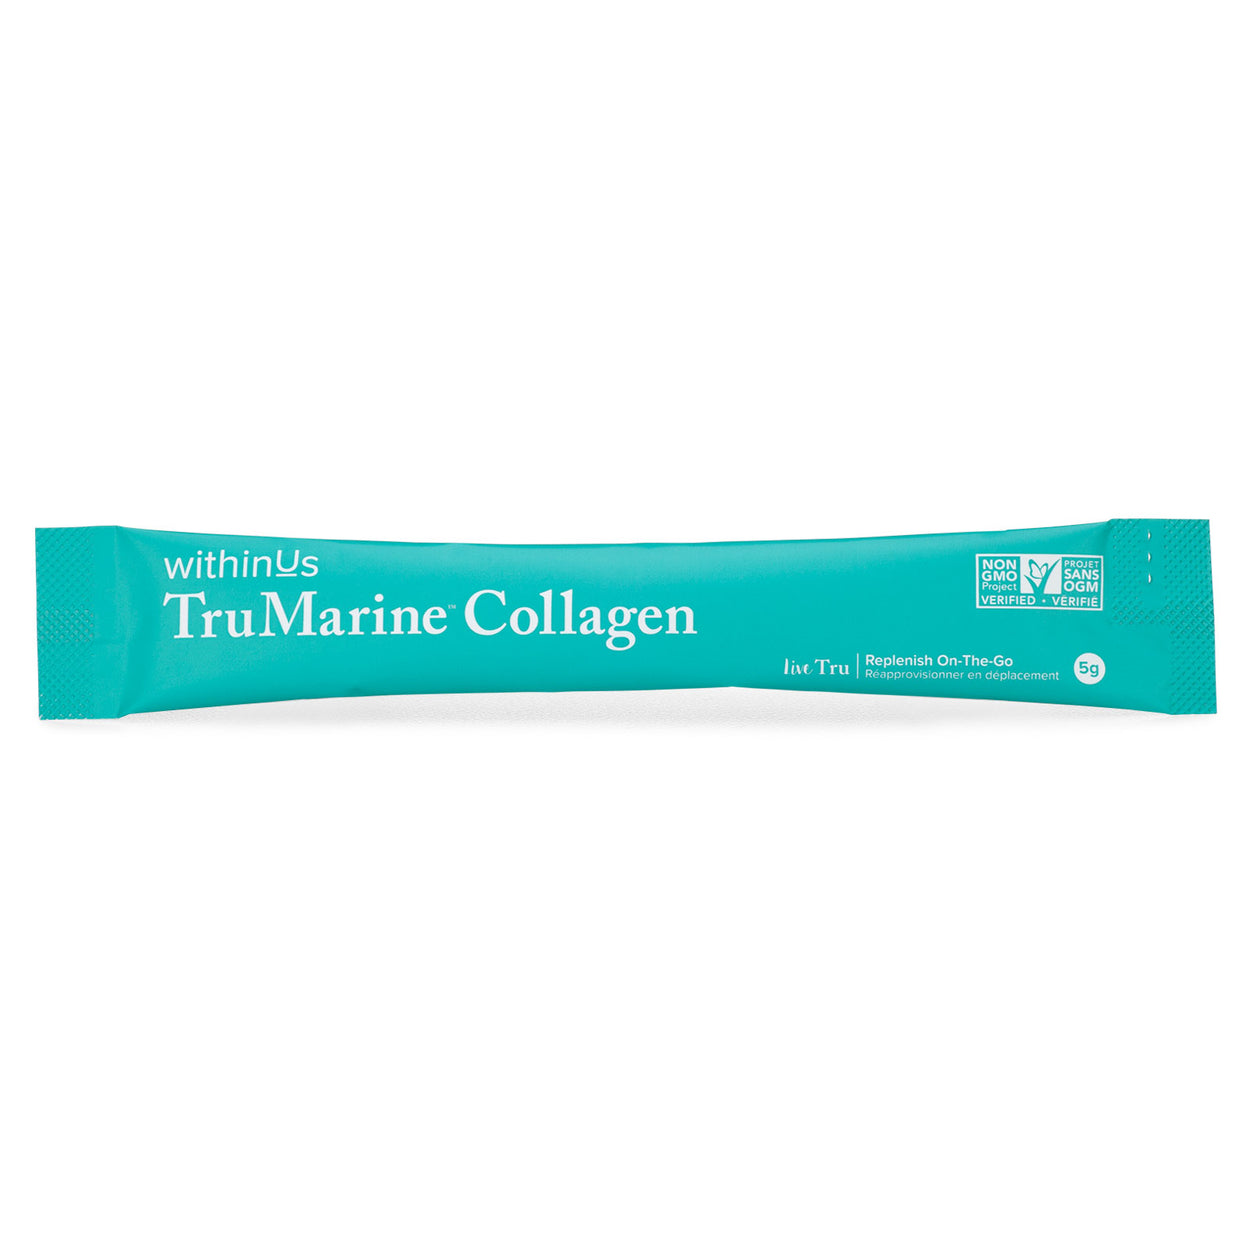 Photo showing a 5g stick pack of withinUs TruMarine Collagen